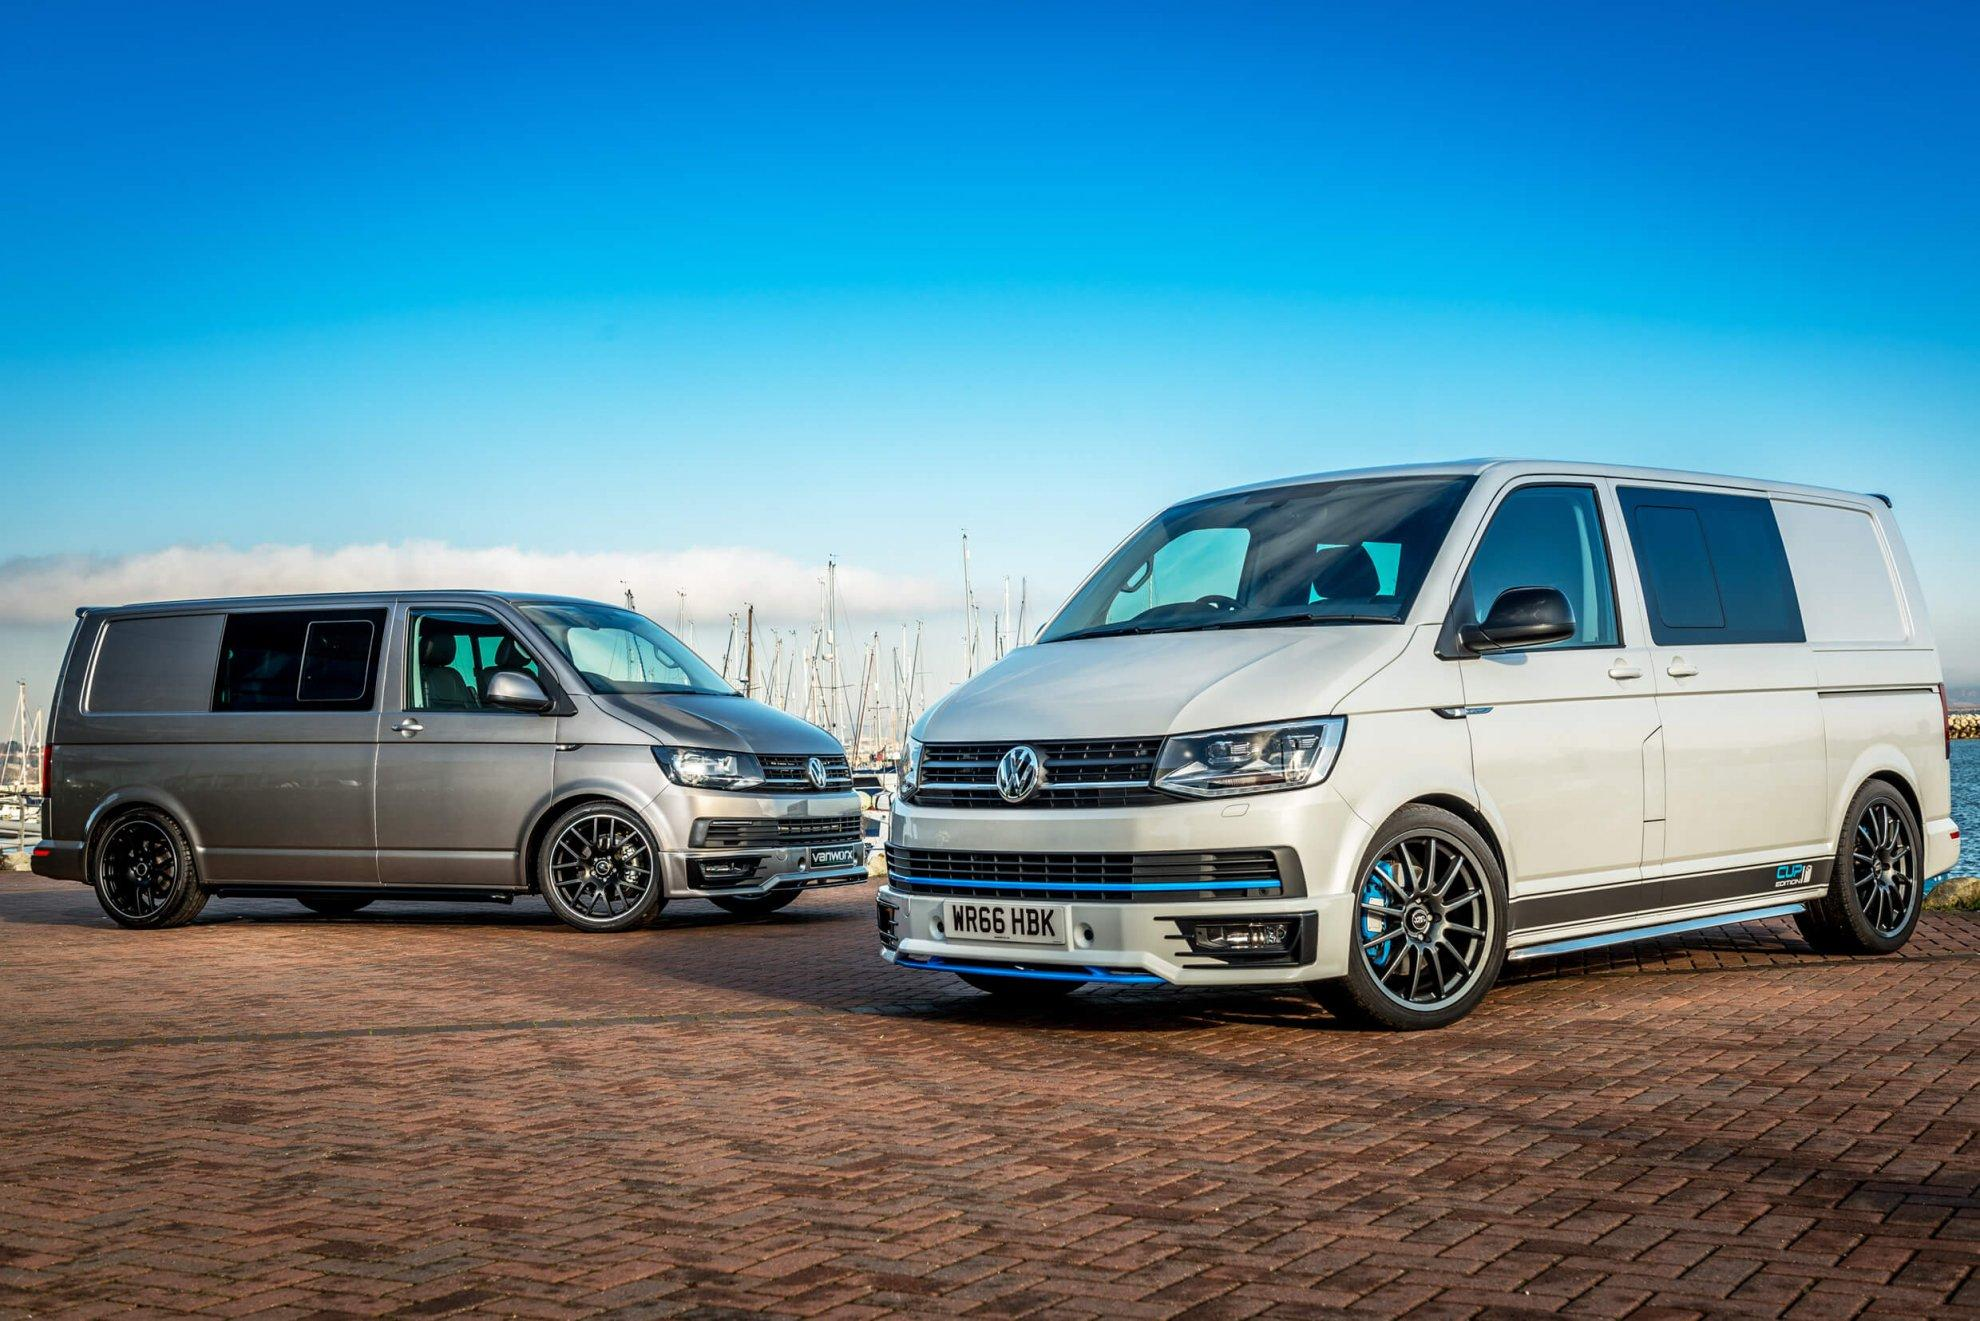 VW transporter finance for van